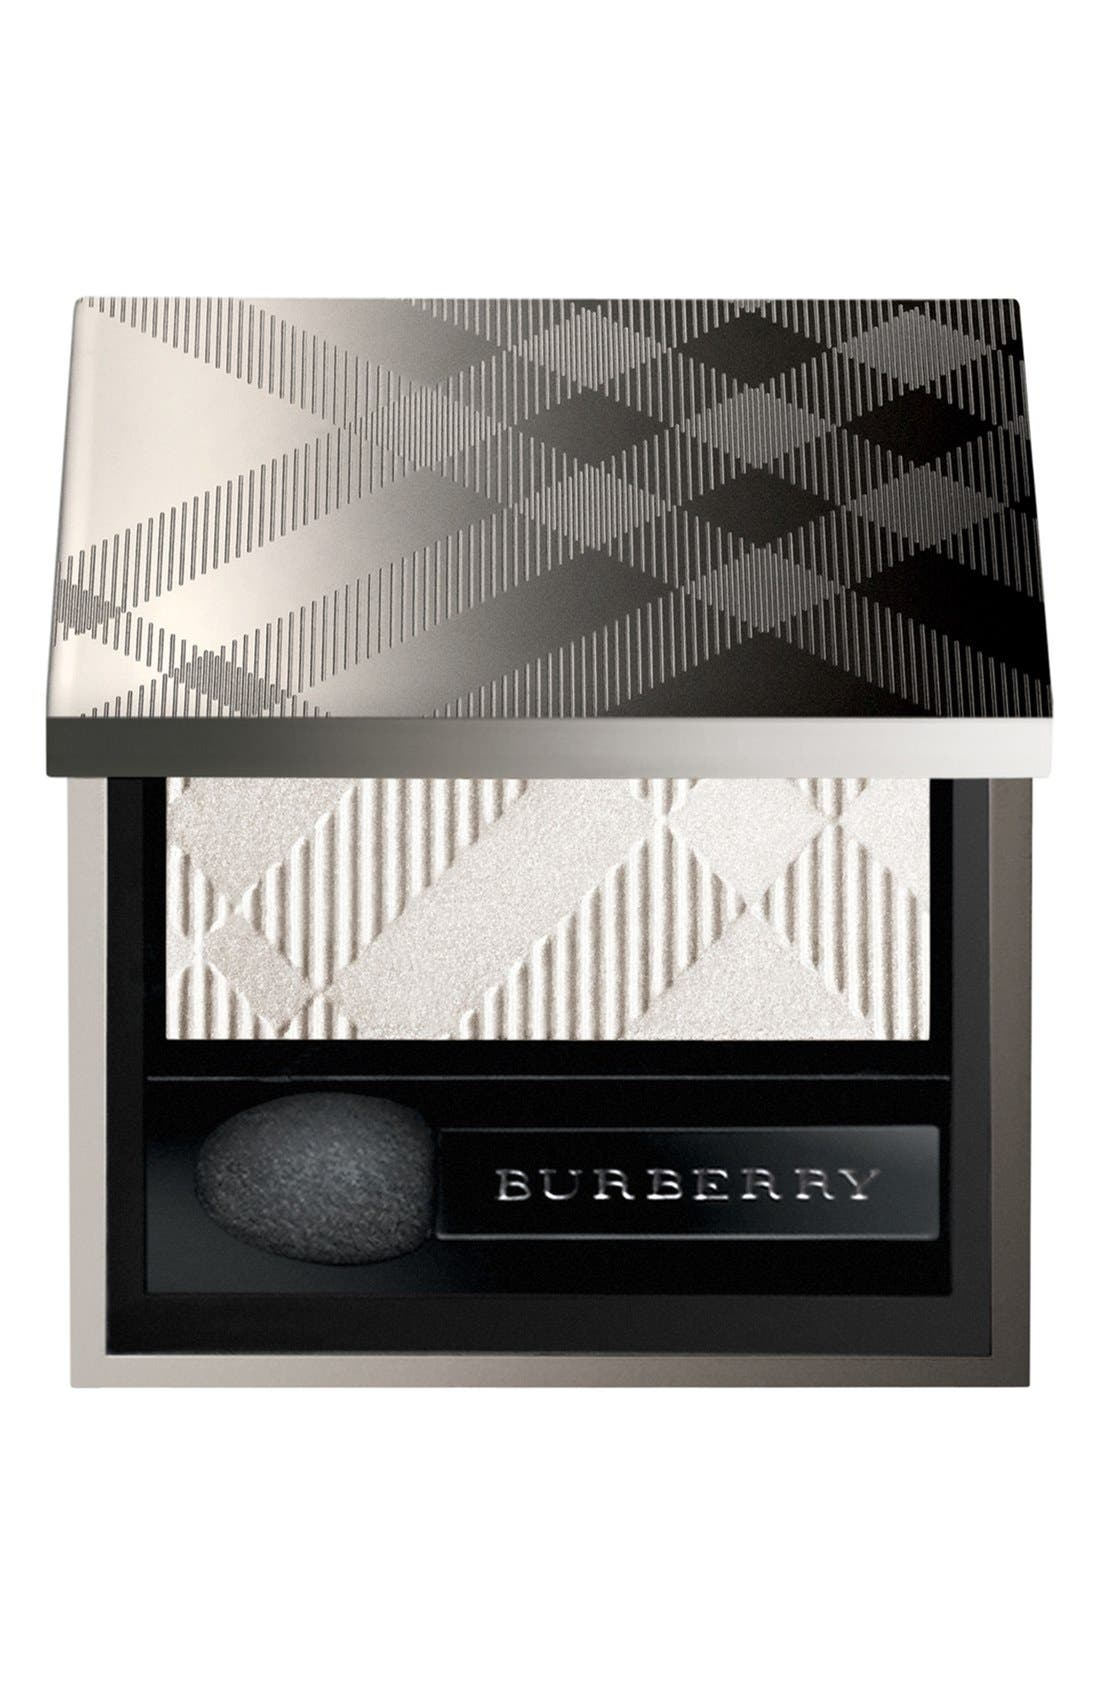 Burberry Beauty 'Eye Colour - Wet & Dry Glow' Eyeshadow